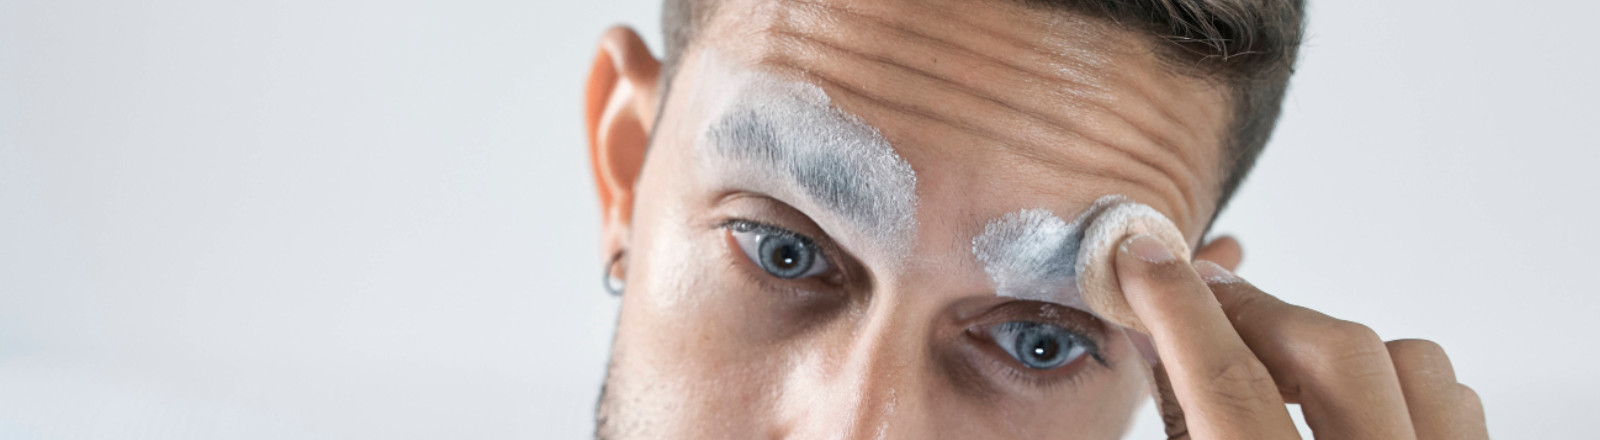 Mid adult man applying face powder on eyebrow in front of mirror